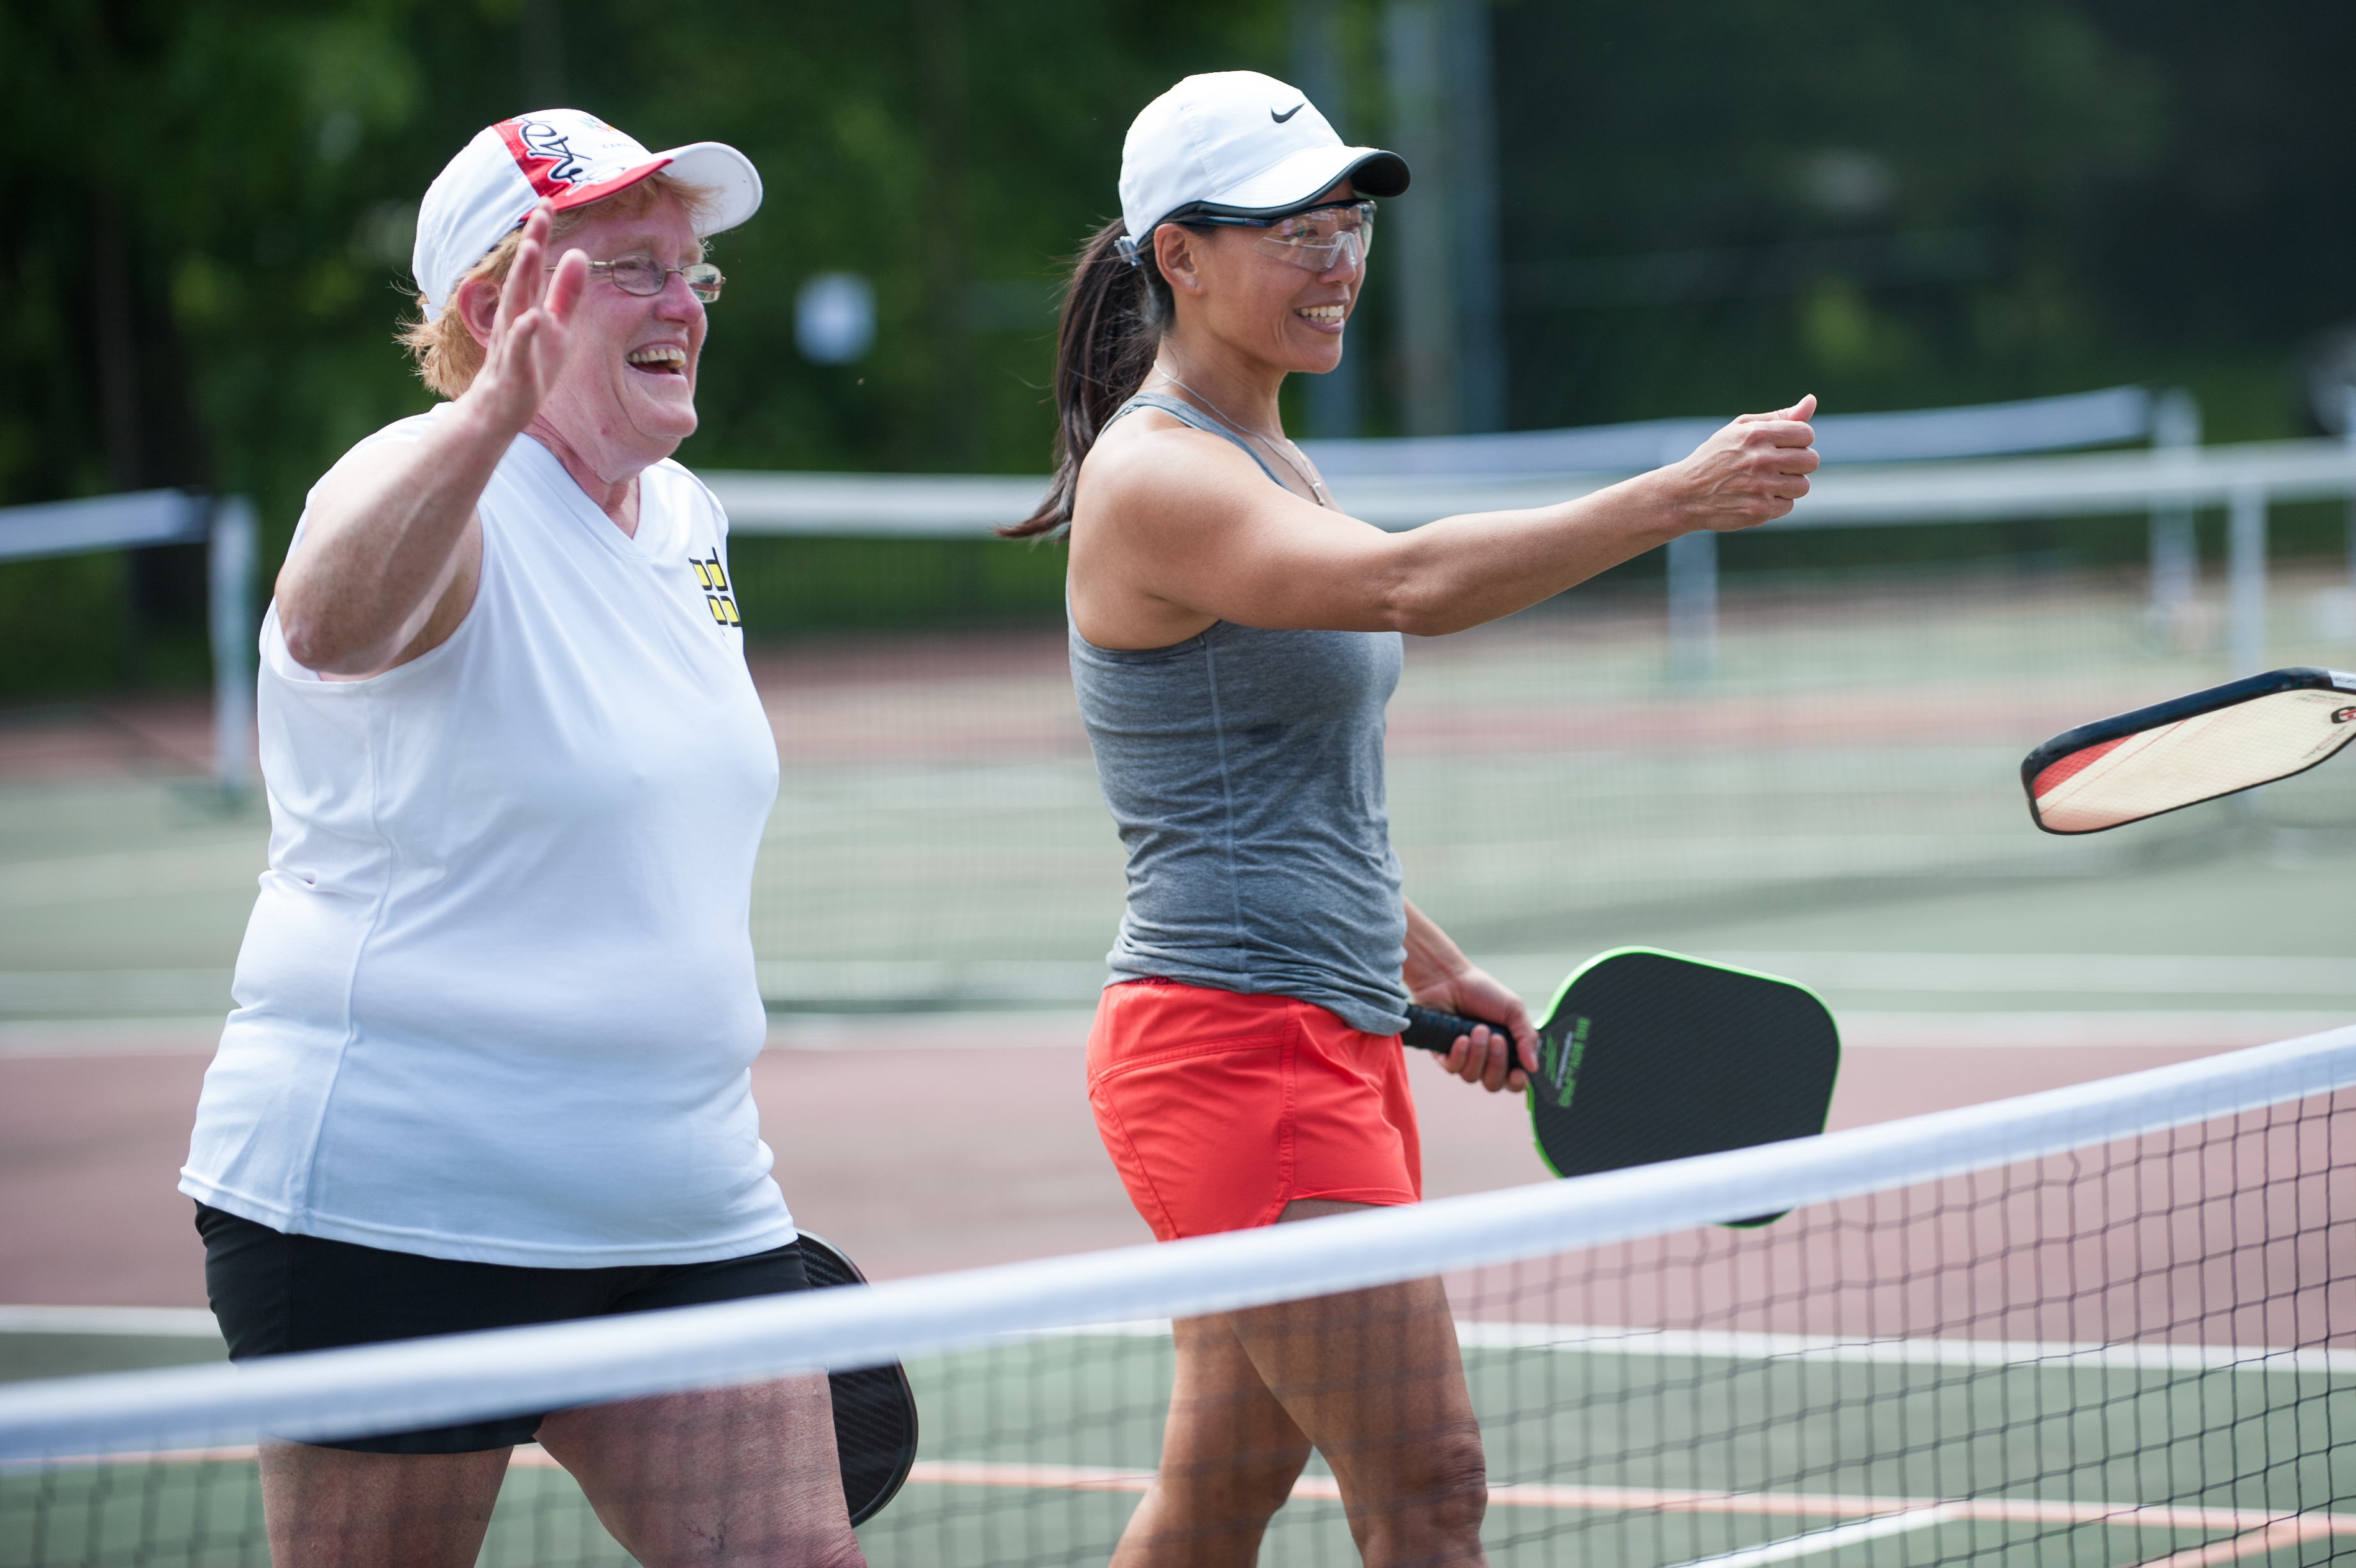 A photo of two women reaching to shake hands after a game of Pickleball